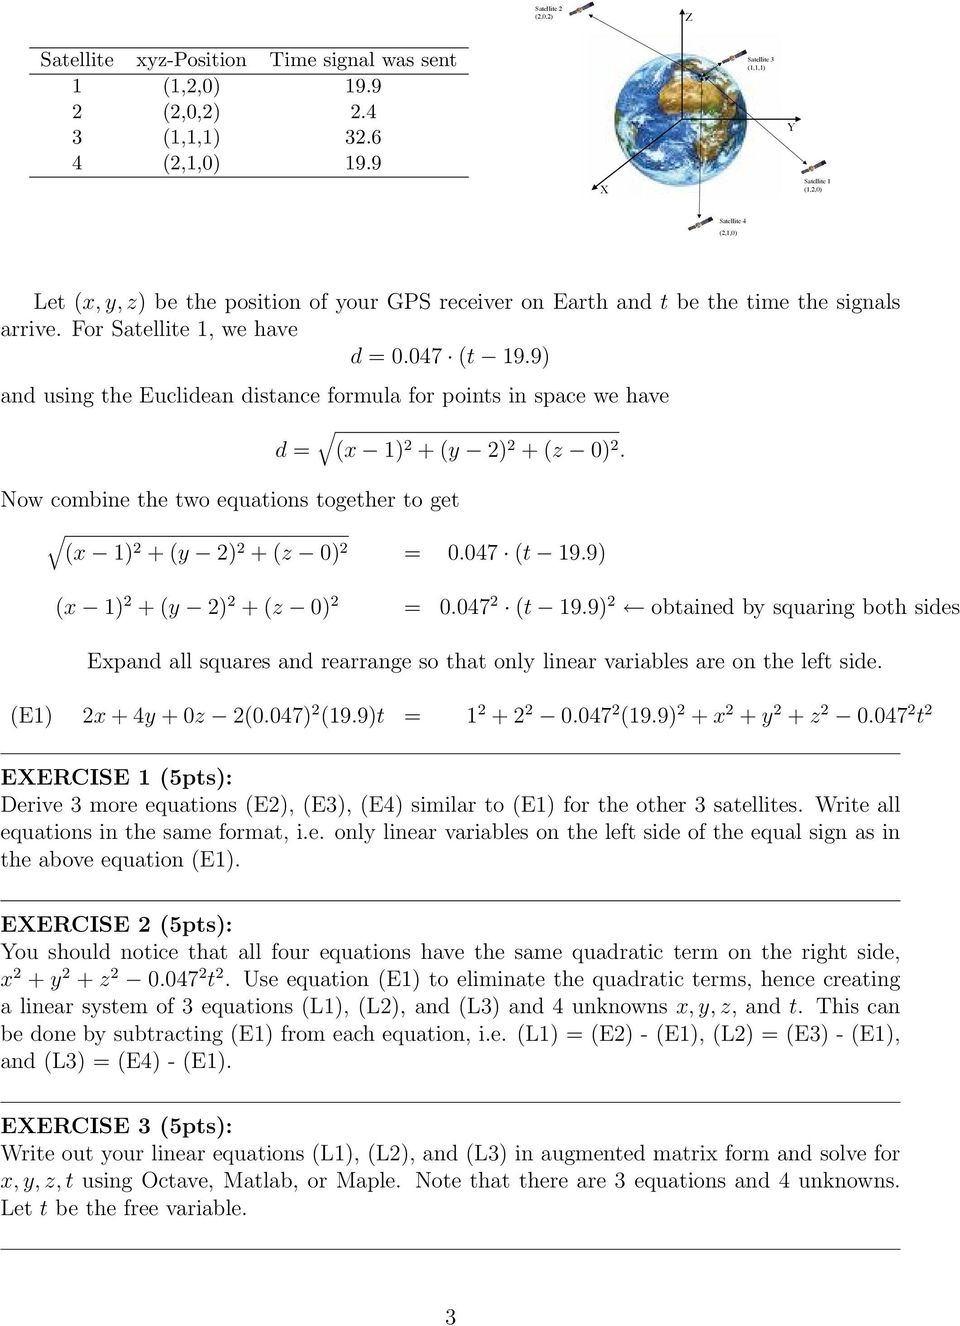 how to solve for x in a matrix equation